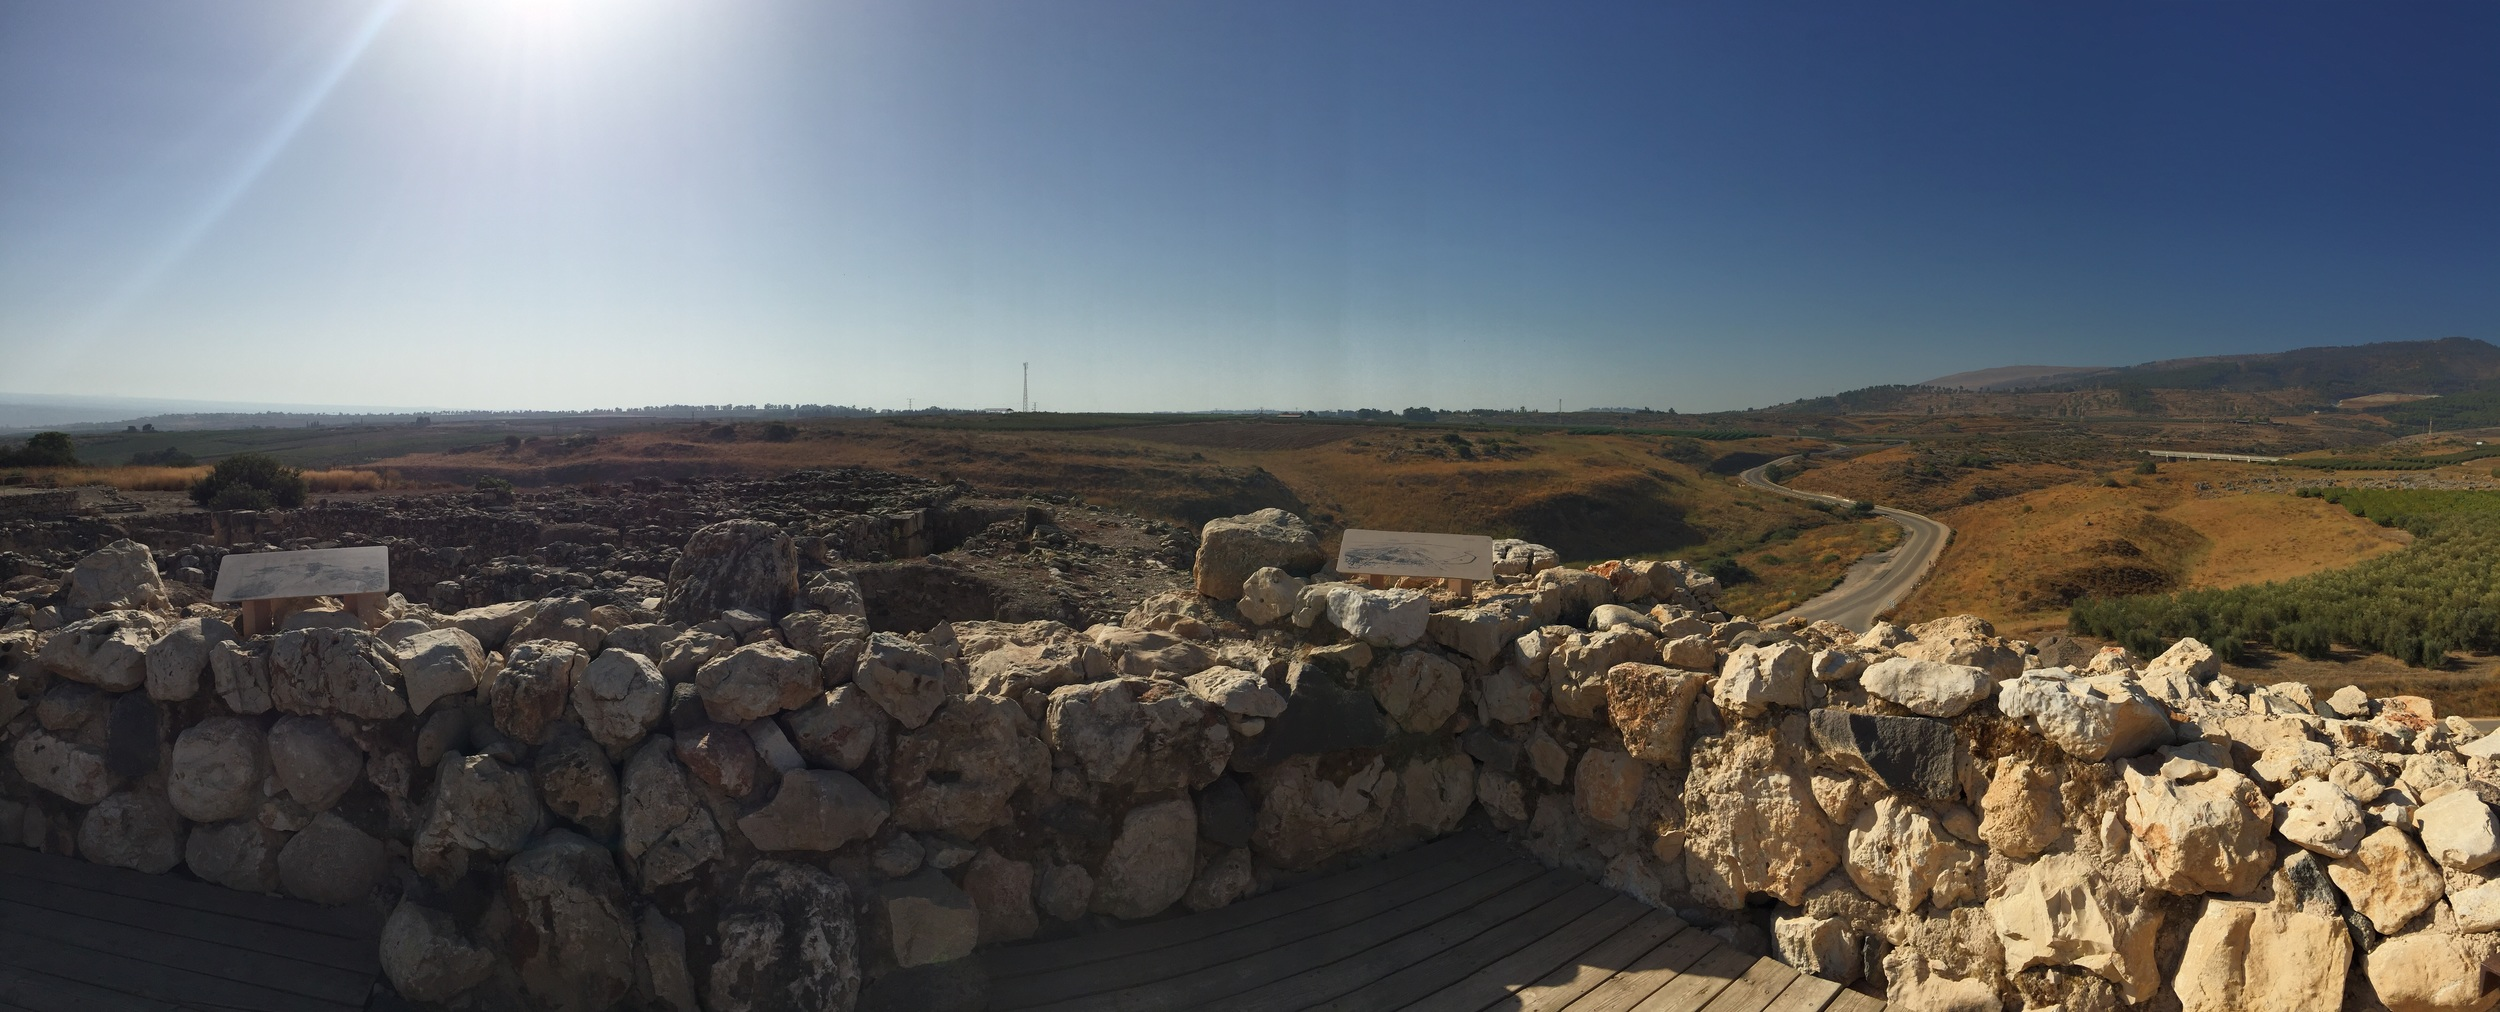 This panorama was taken from the top of the watch tower at Tel Hazor.